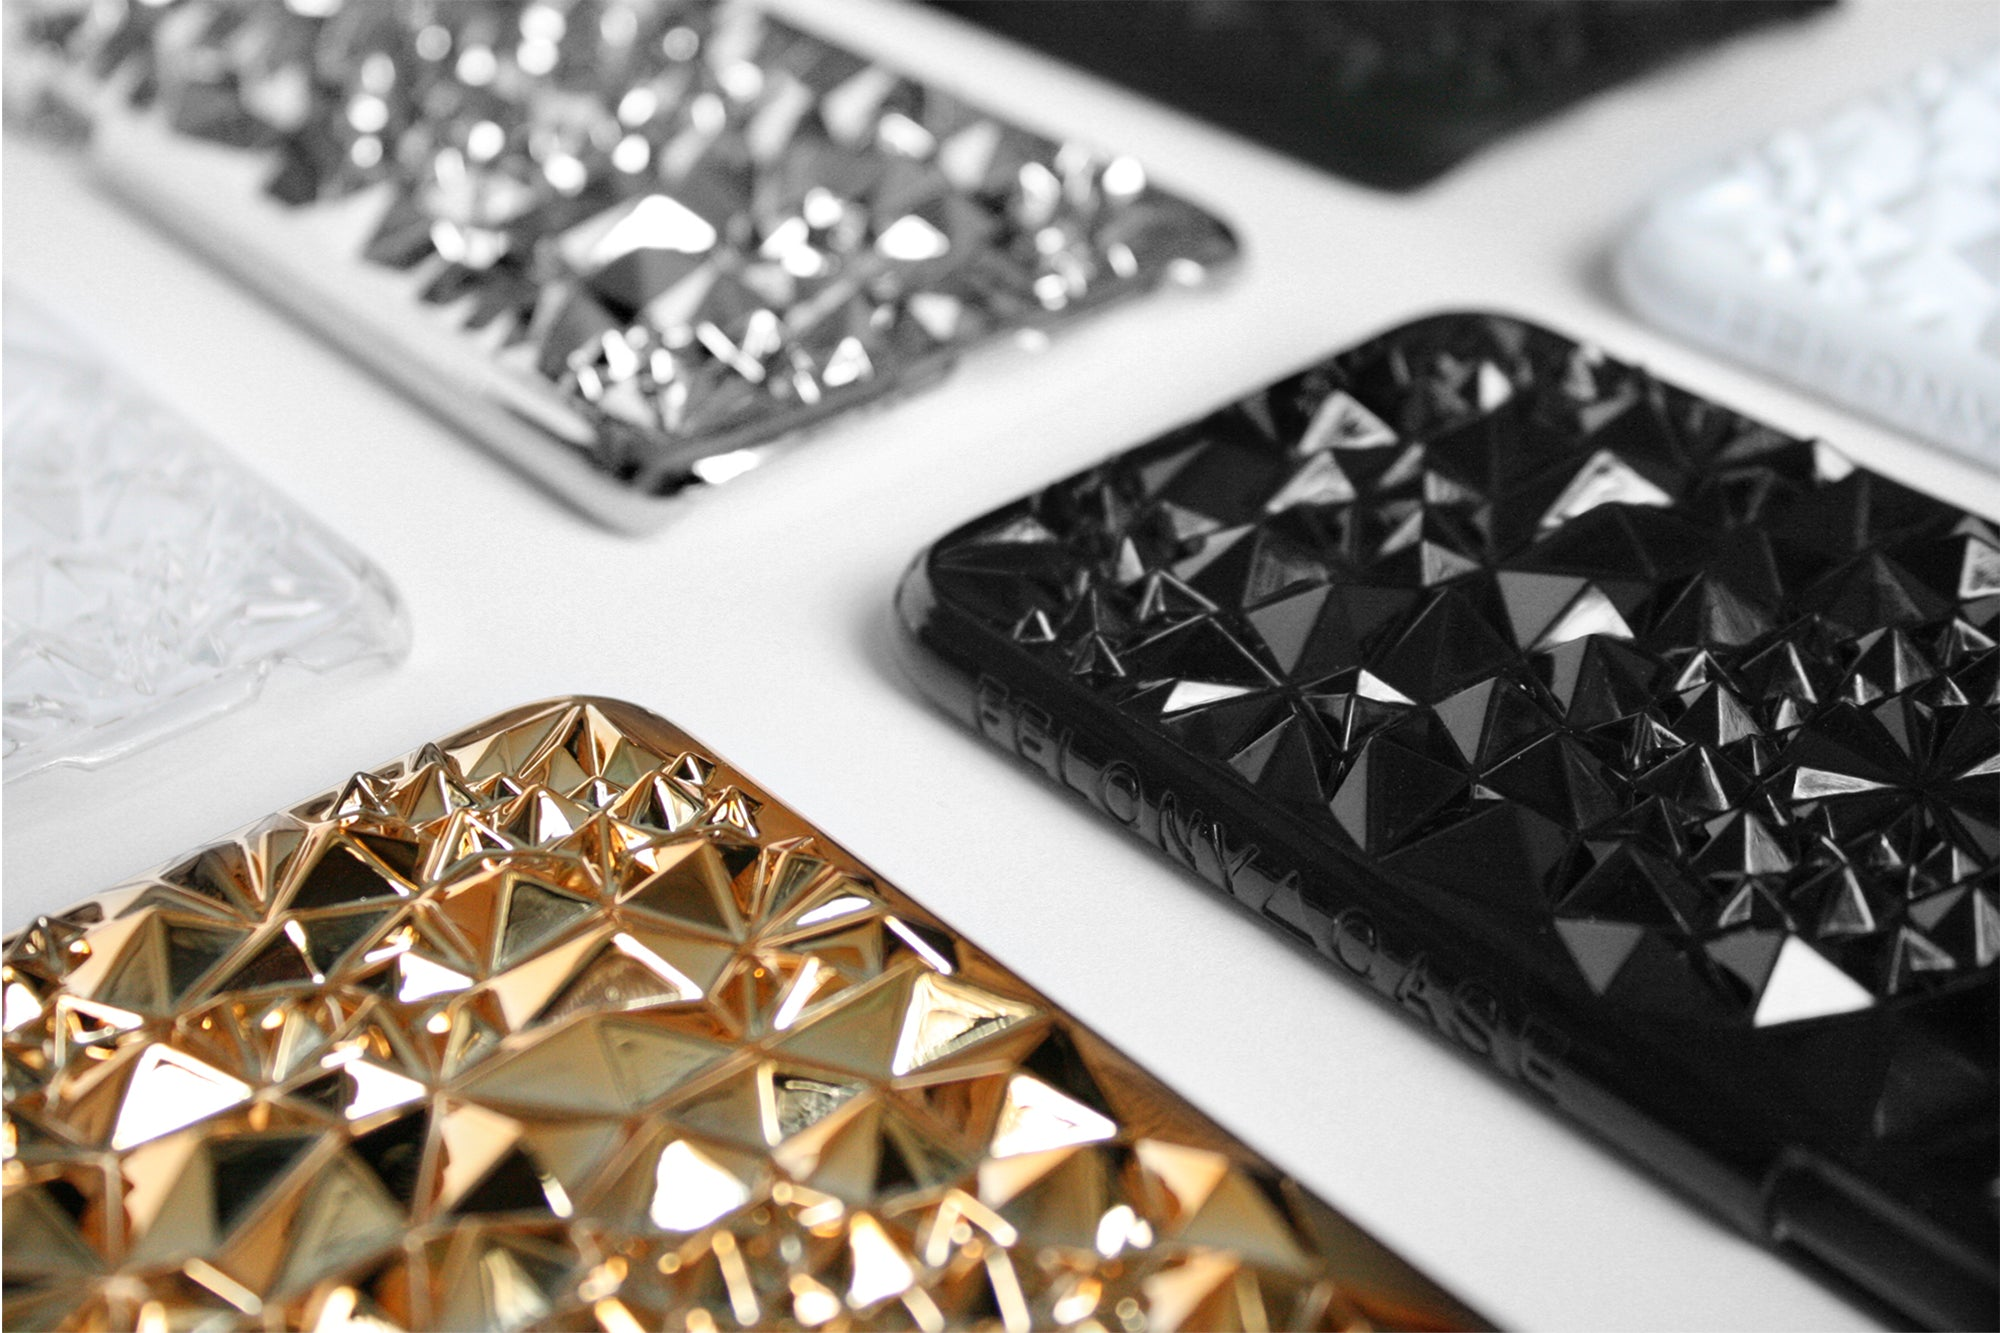 Kaleidoscope cases by Felony Case on Teqtique.com